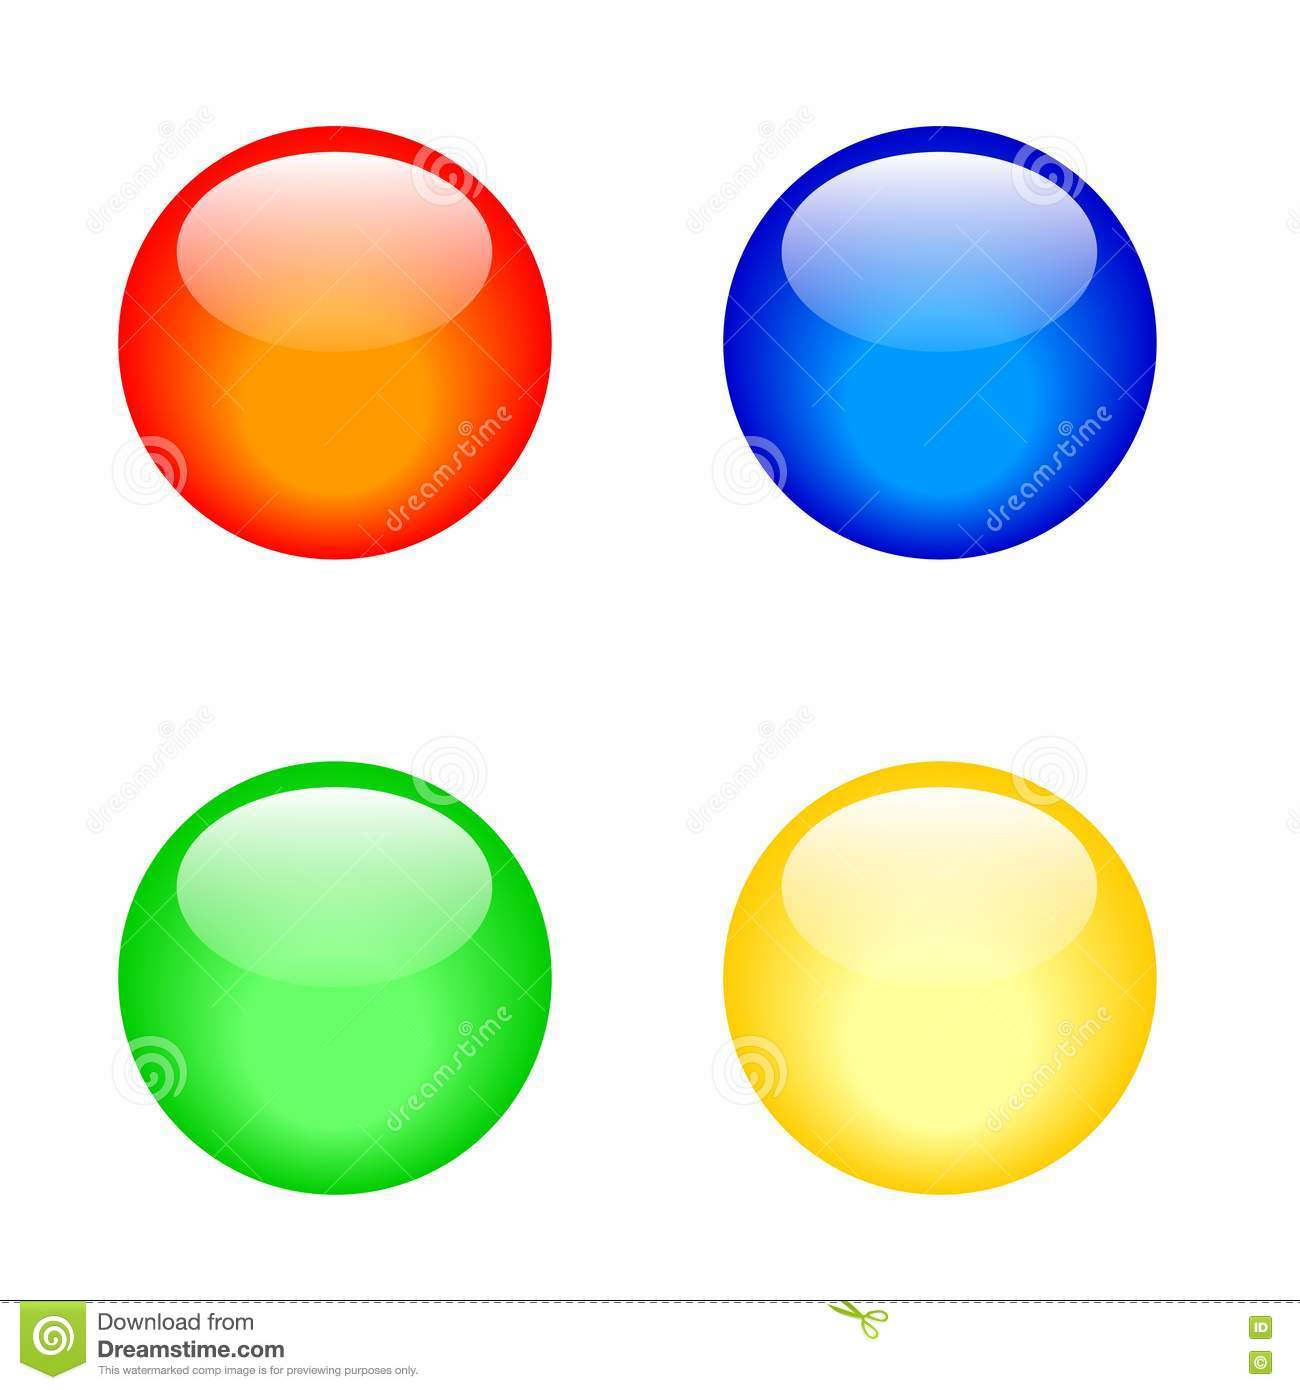 3D Buttons Royalty Free Stock Images